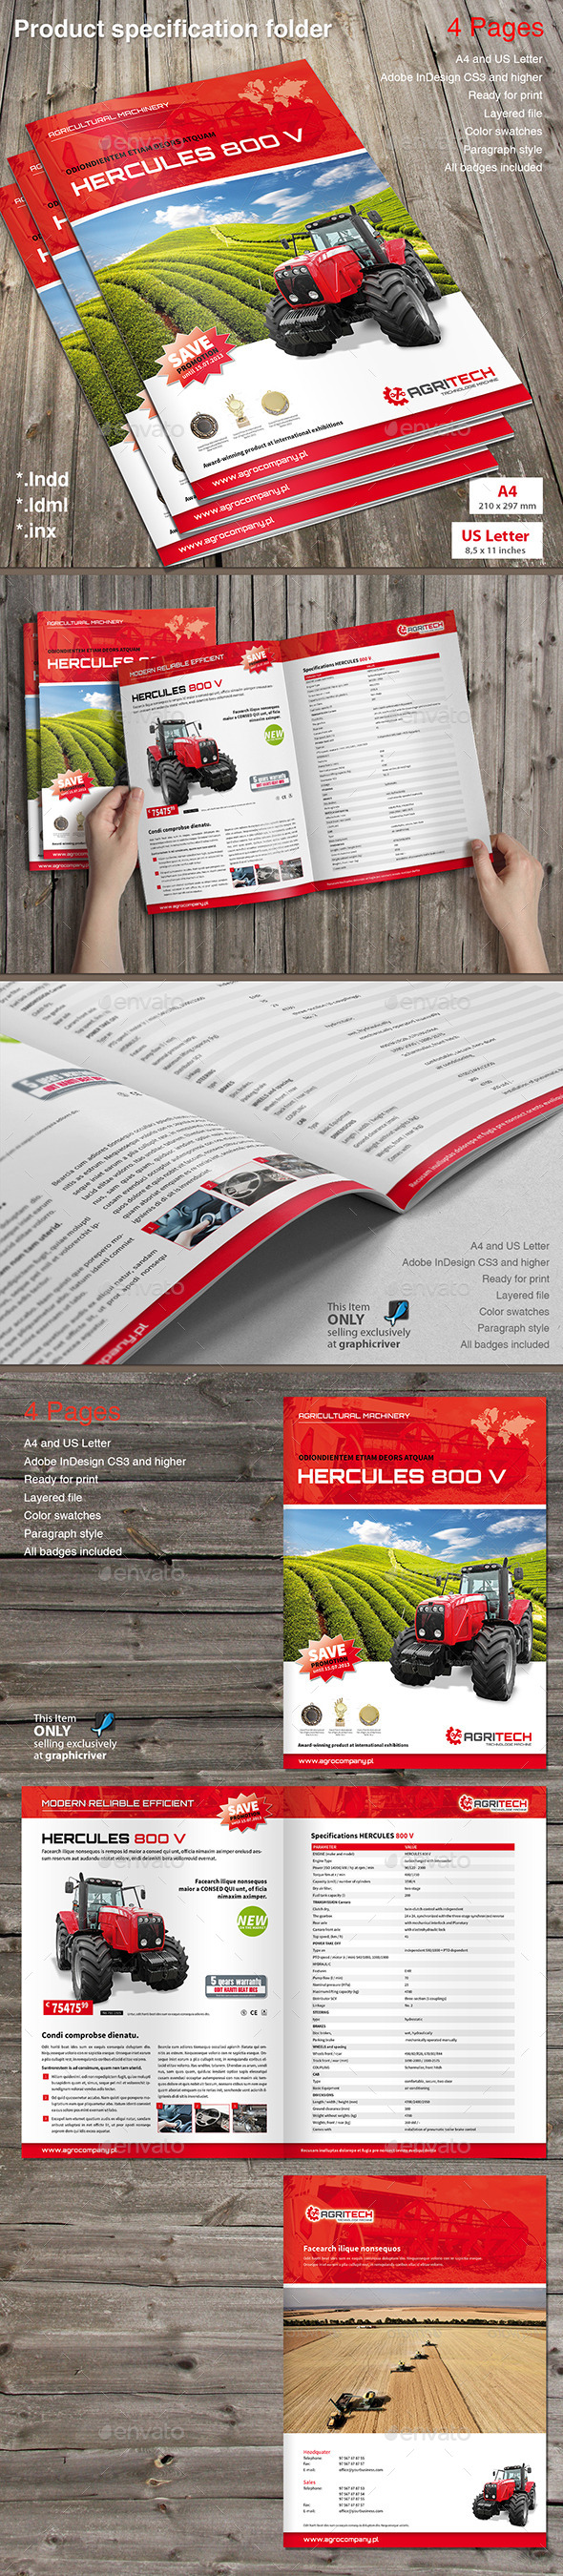 Product Specification Folder